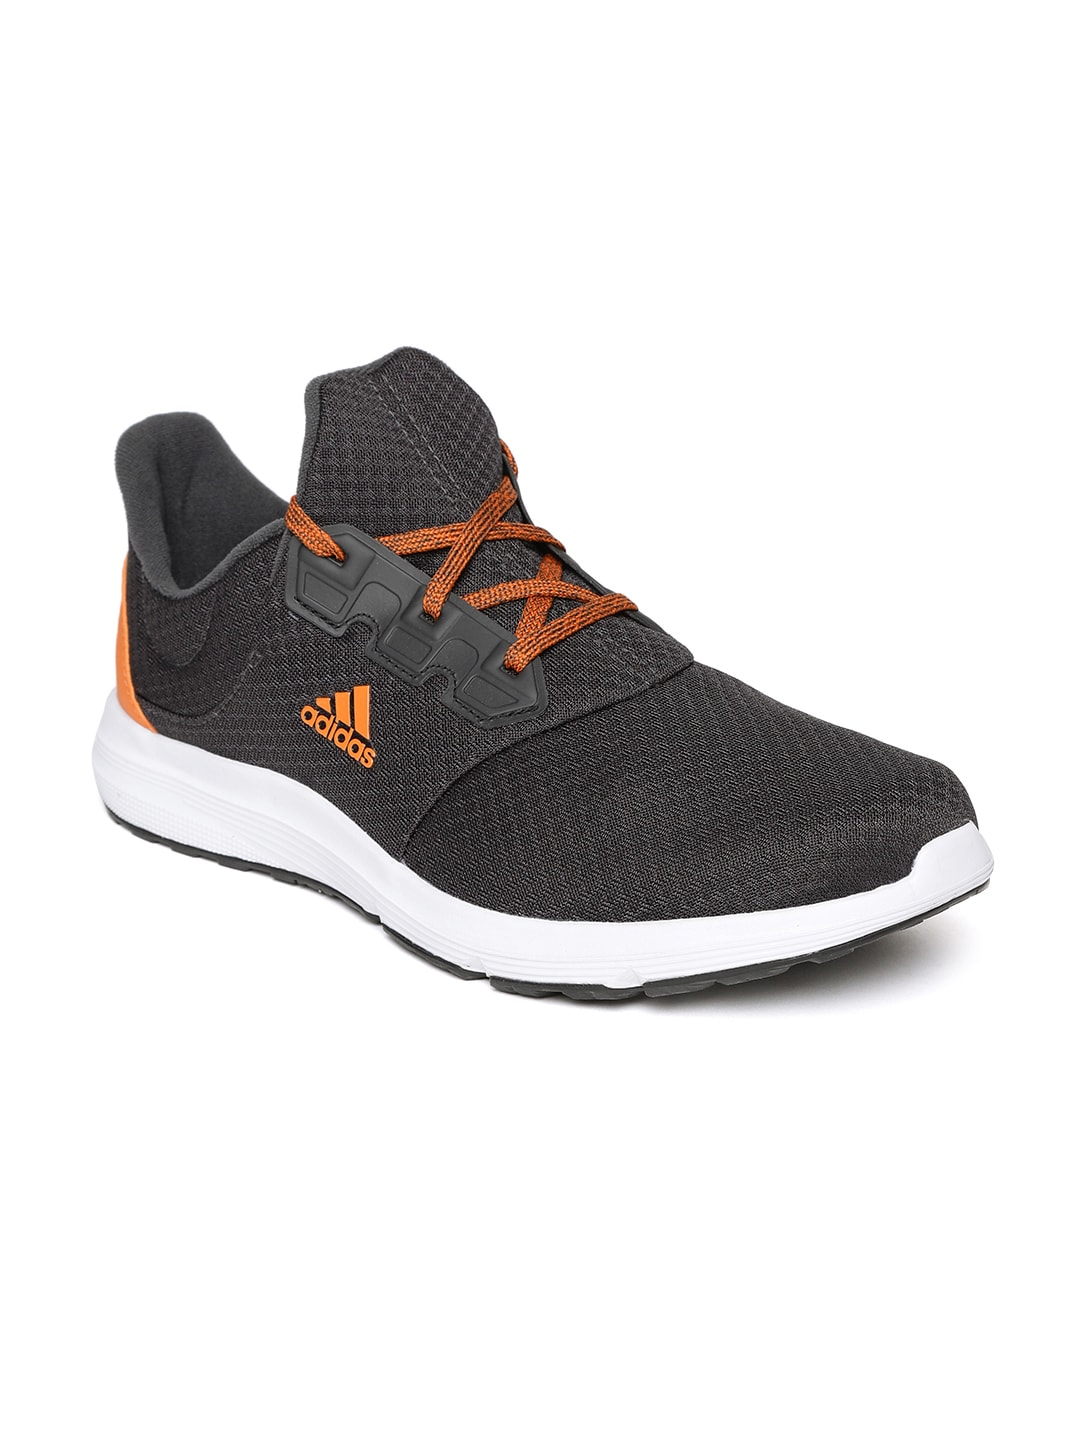 arrives bfa55 275ad Charcoal Footwear - Buy Charcoal Footwear online in India